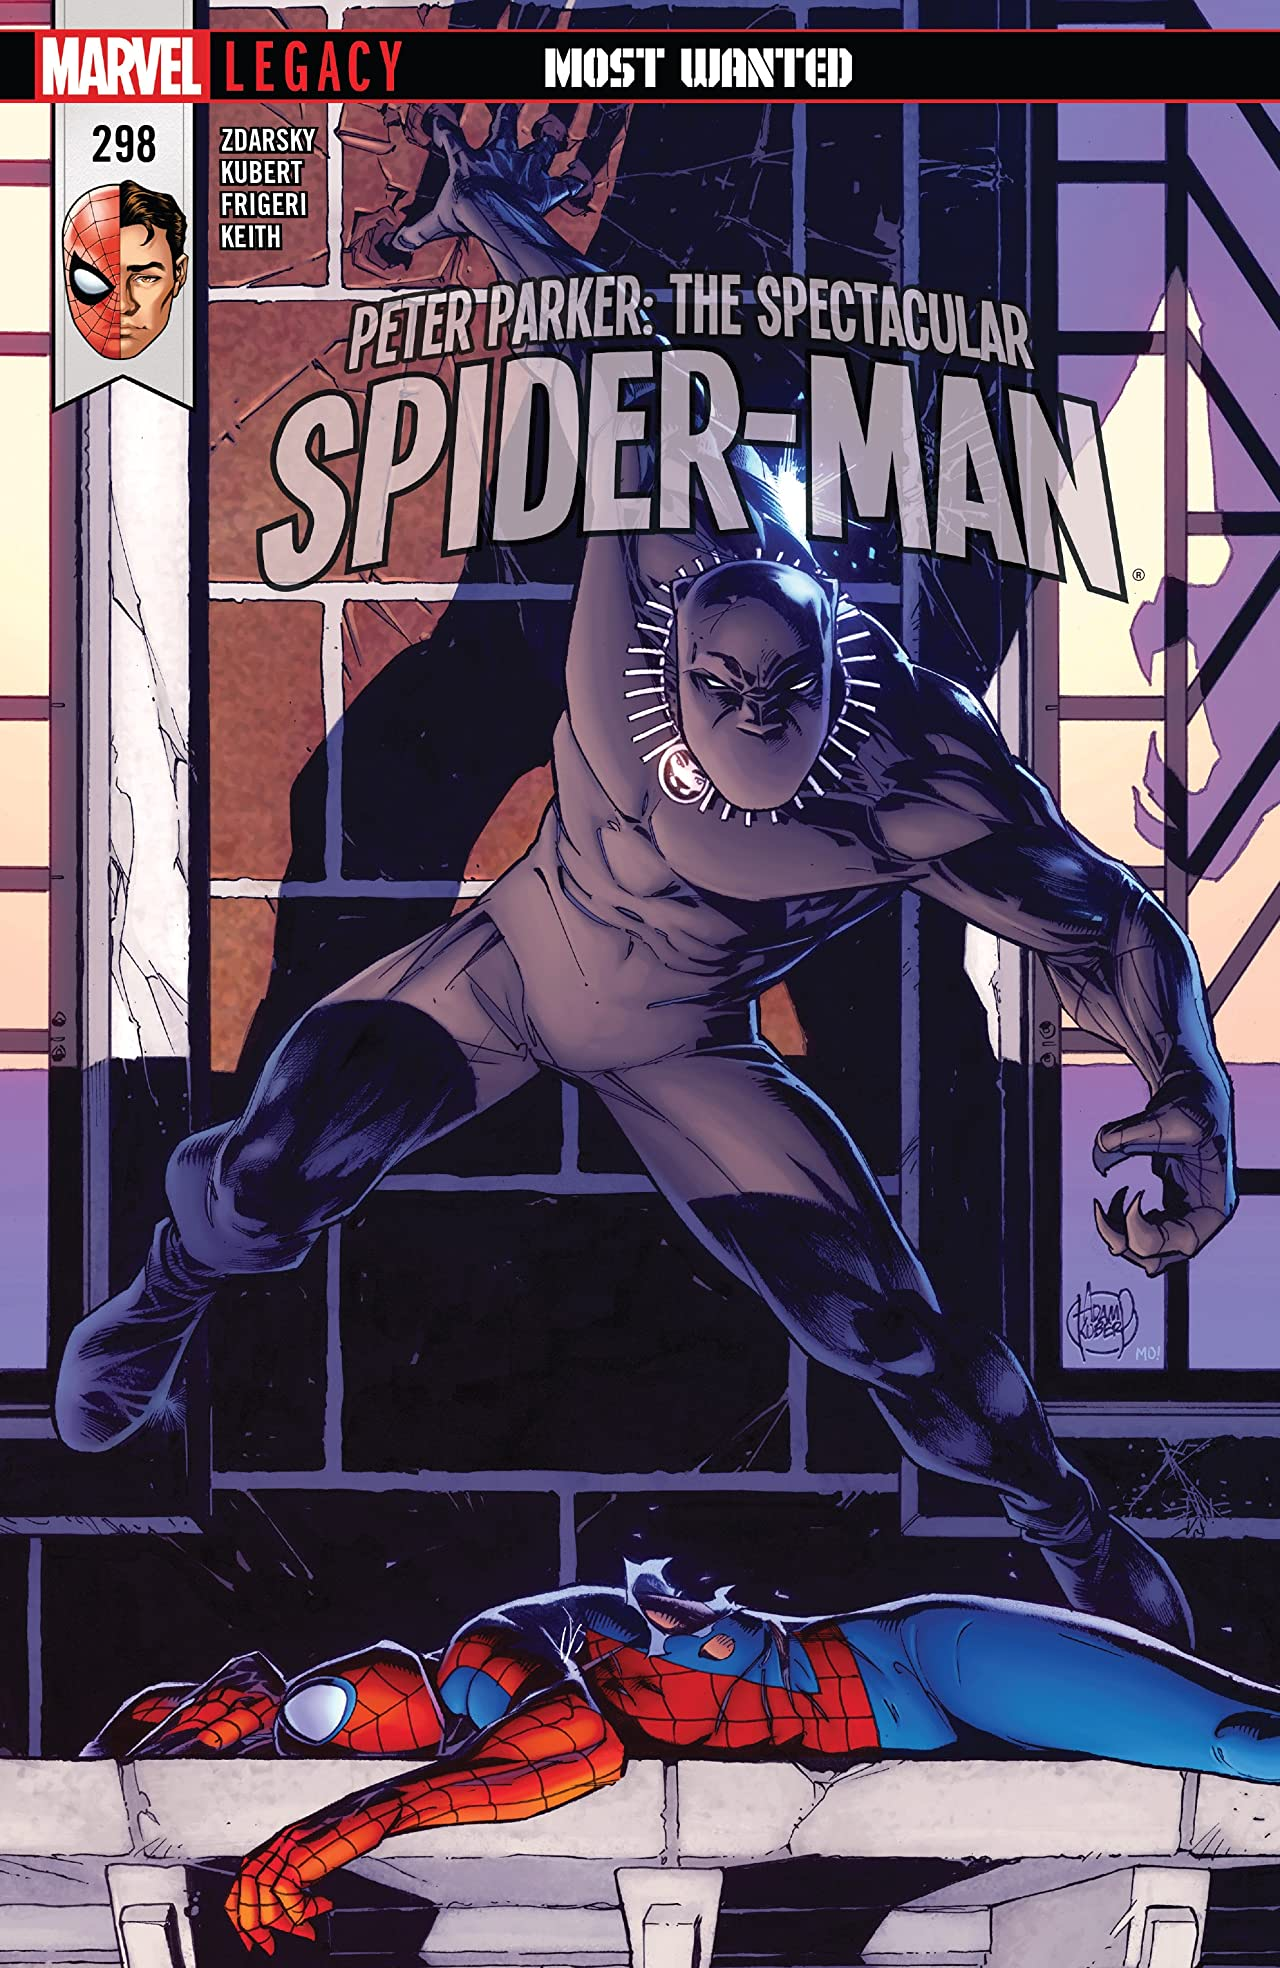 Peter Parker: The Spectacular Spider-Man (2017-2018) #298